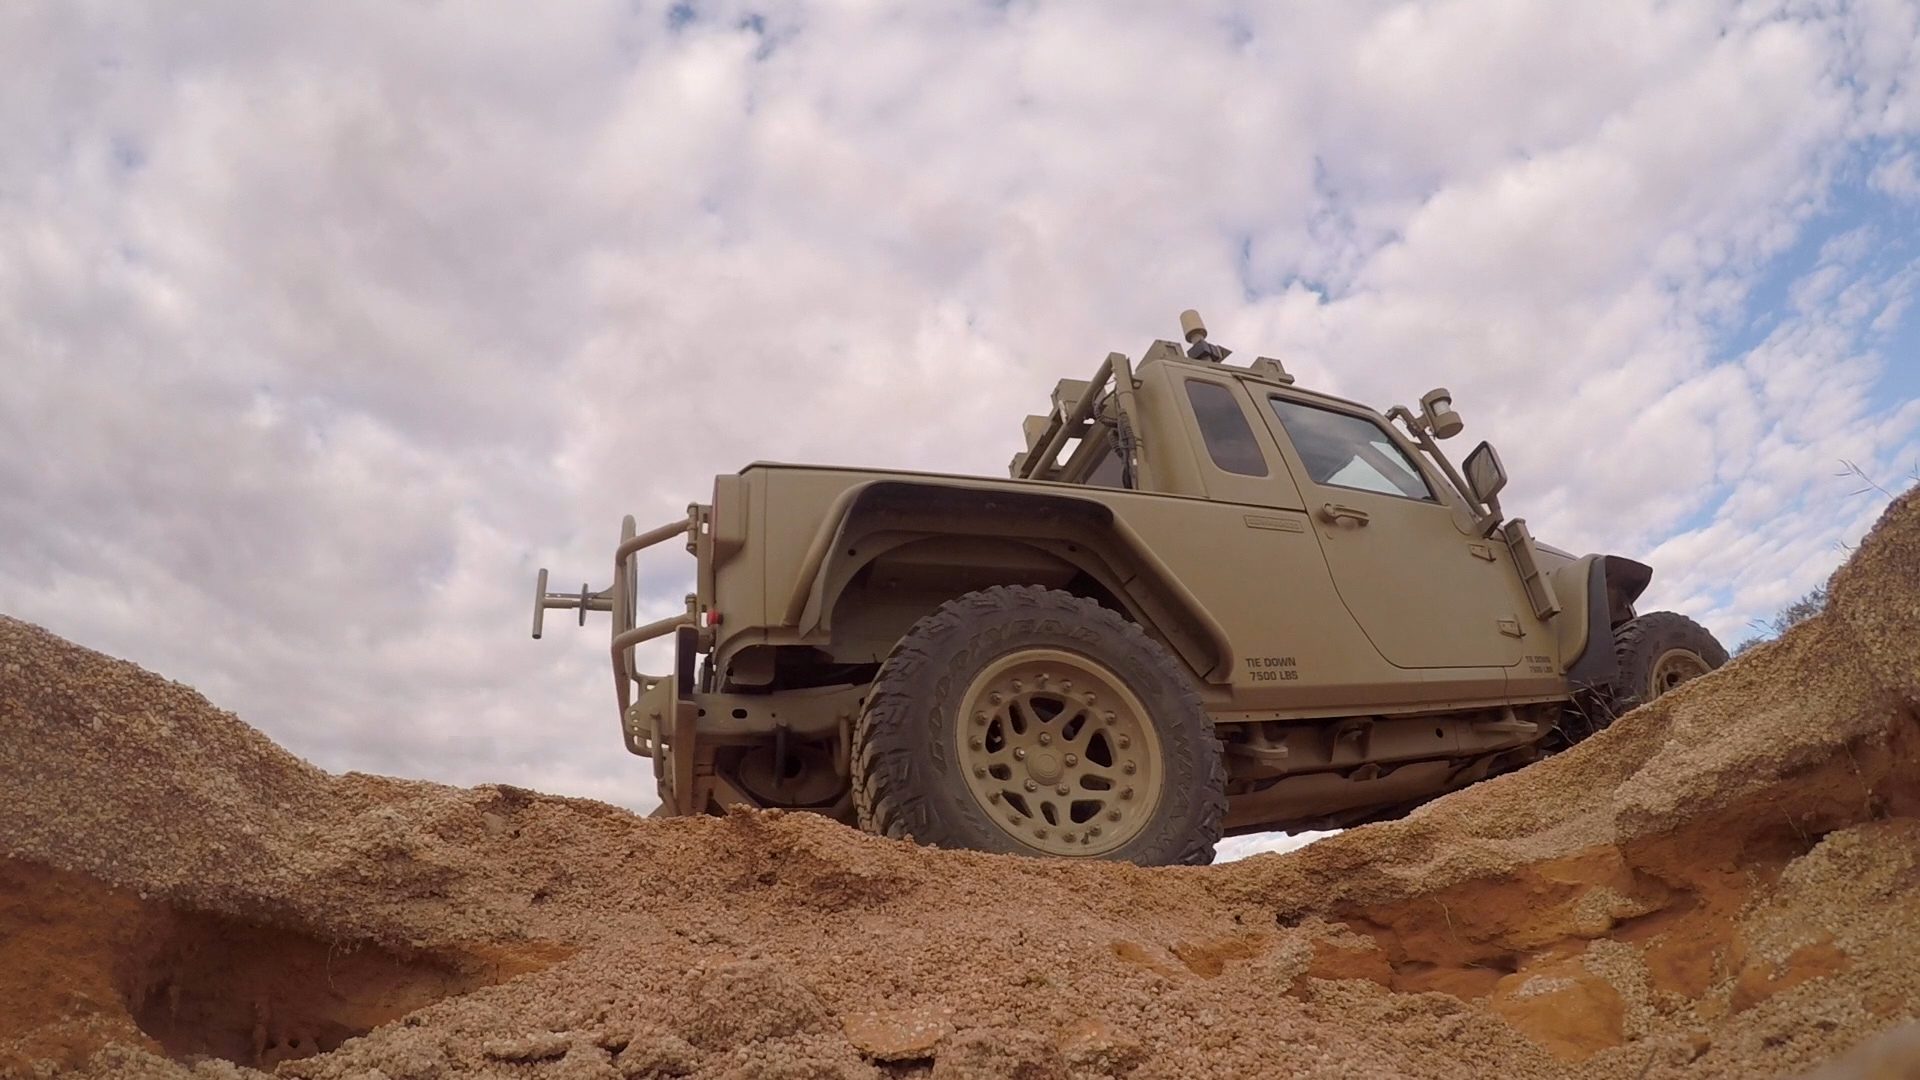 TARDEC robotics engineers went to the Woomera Test Range in South Australia to evaluate the resilience of autonomously driving a Jeep Wrangler Rubicon operated from across the globe by TARDEC engineers in Warren, Michigan. (Photo by Isiah Davenport)